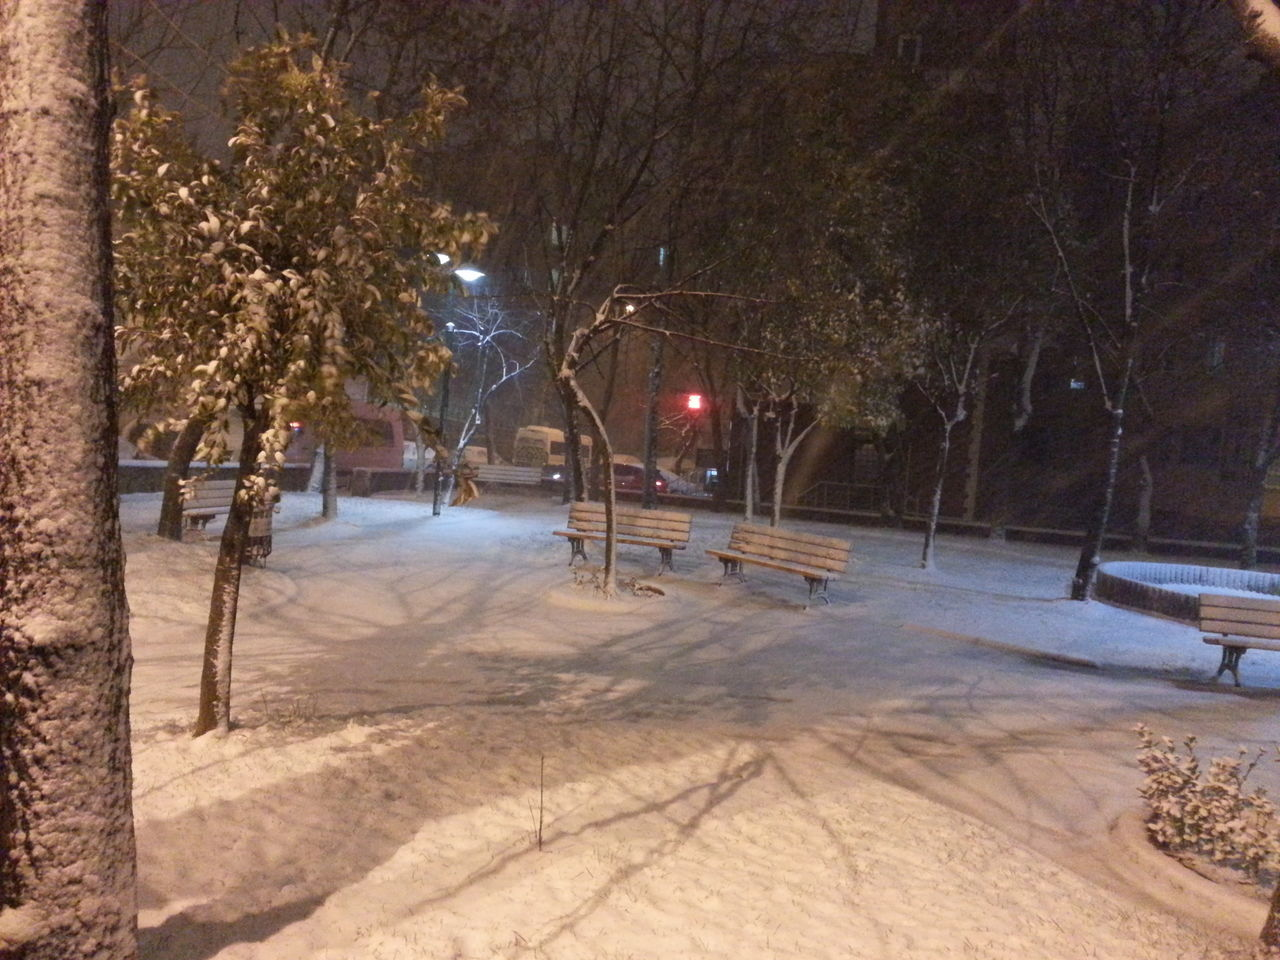 tree, winter, snow, cold temperature, nature, outdoors, night, bare tree, beauty in nature, no people